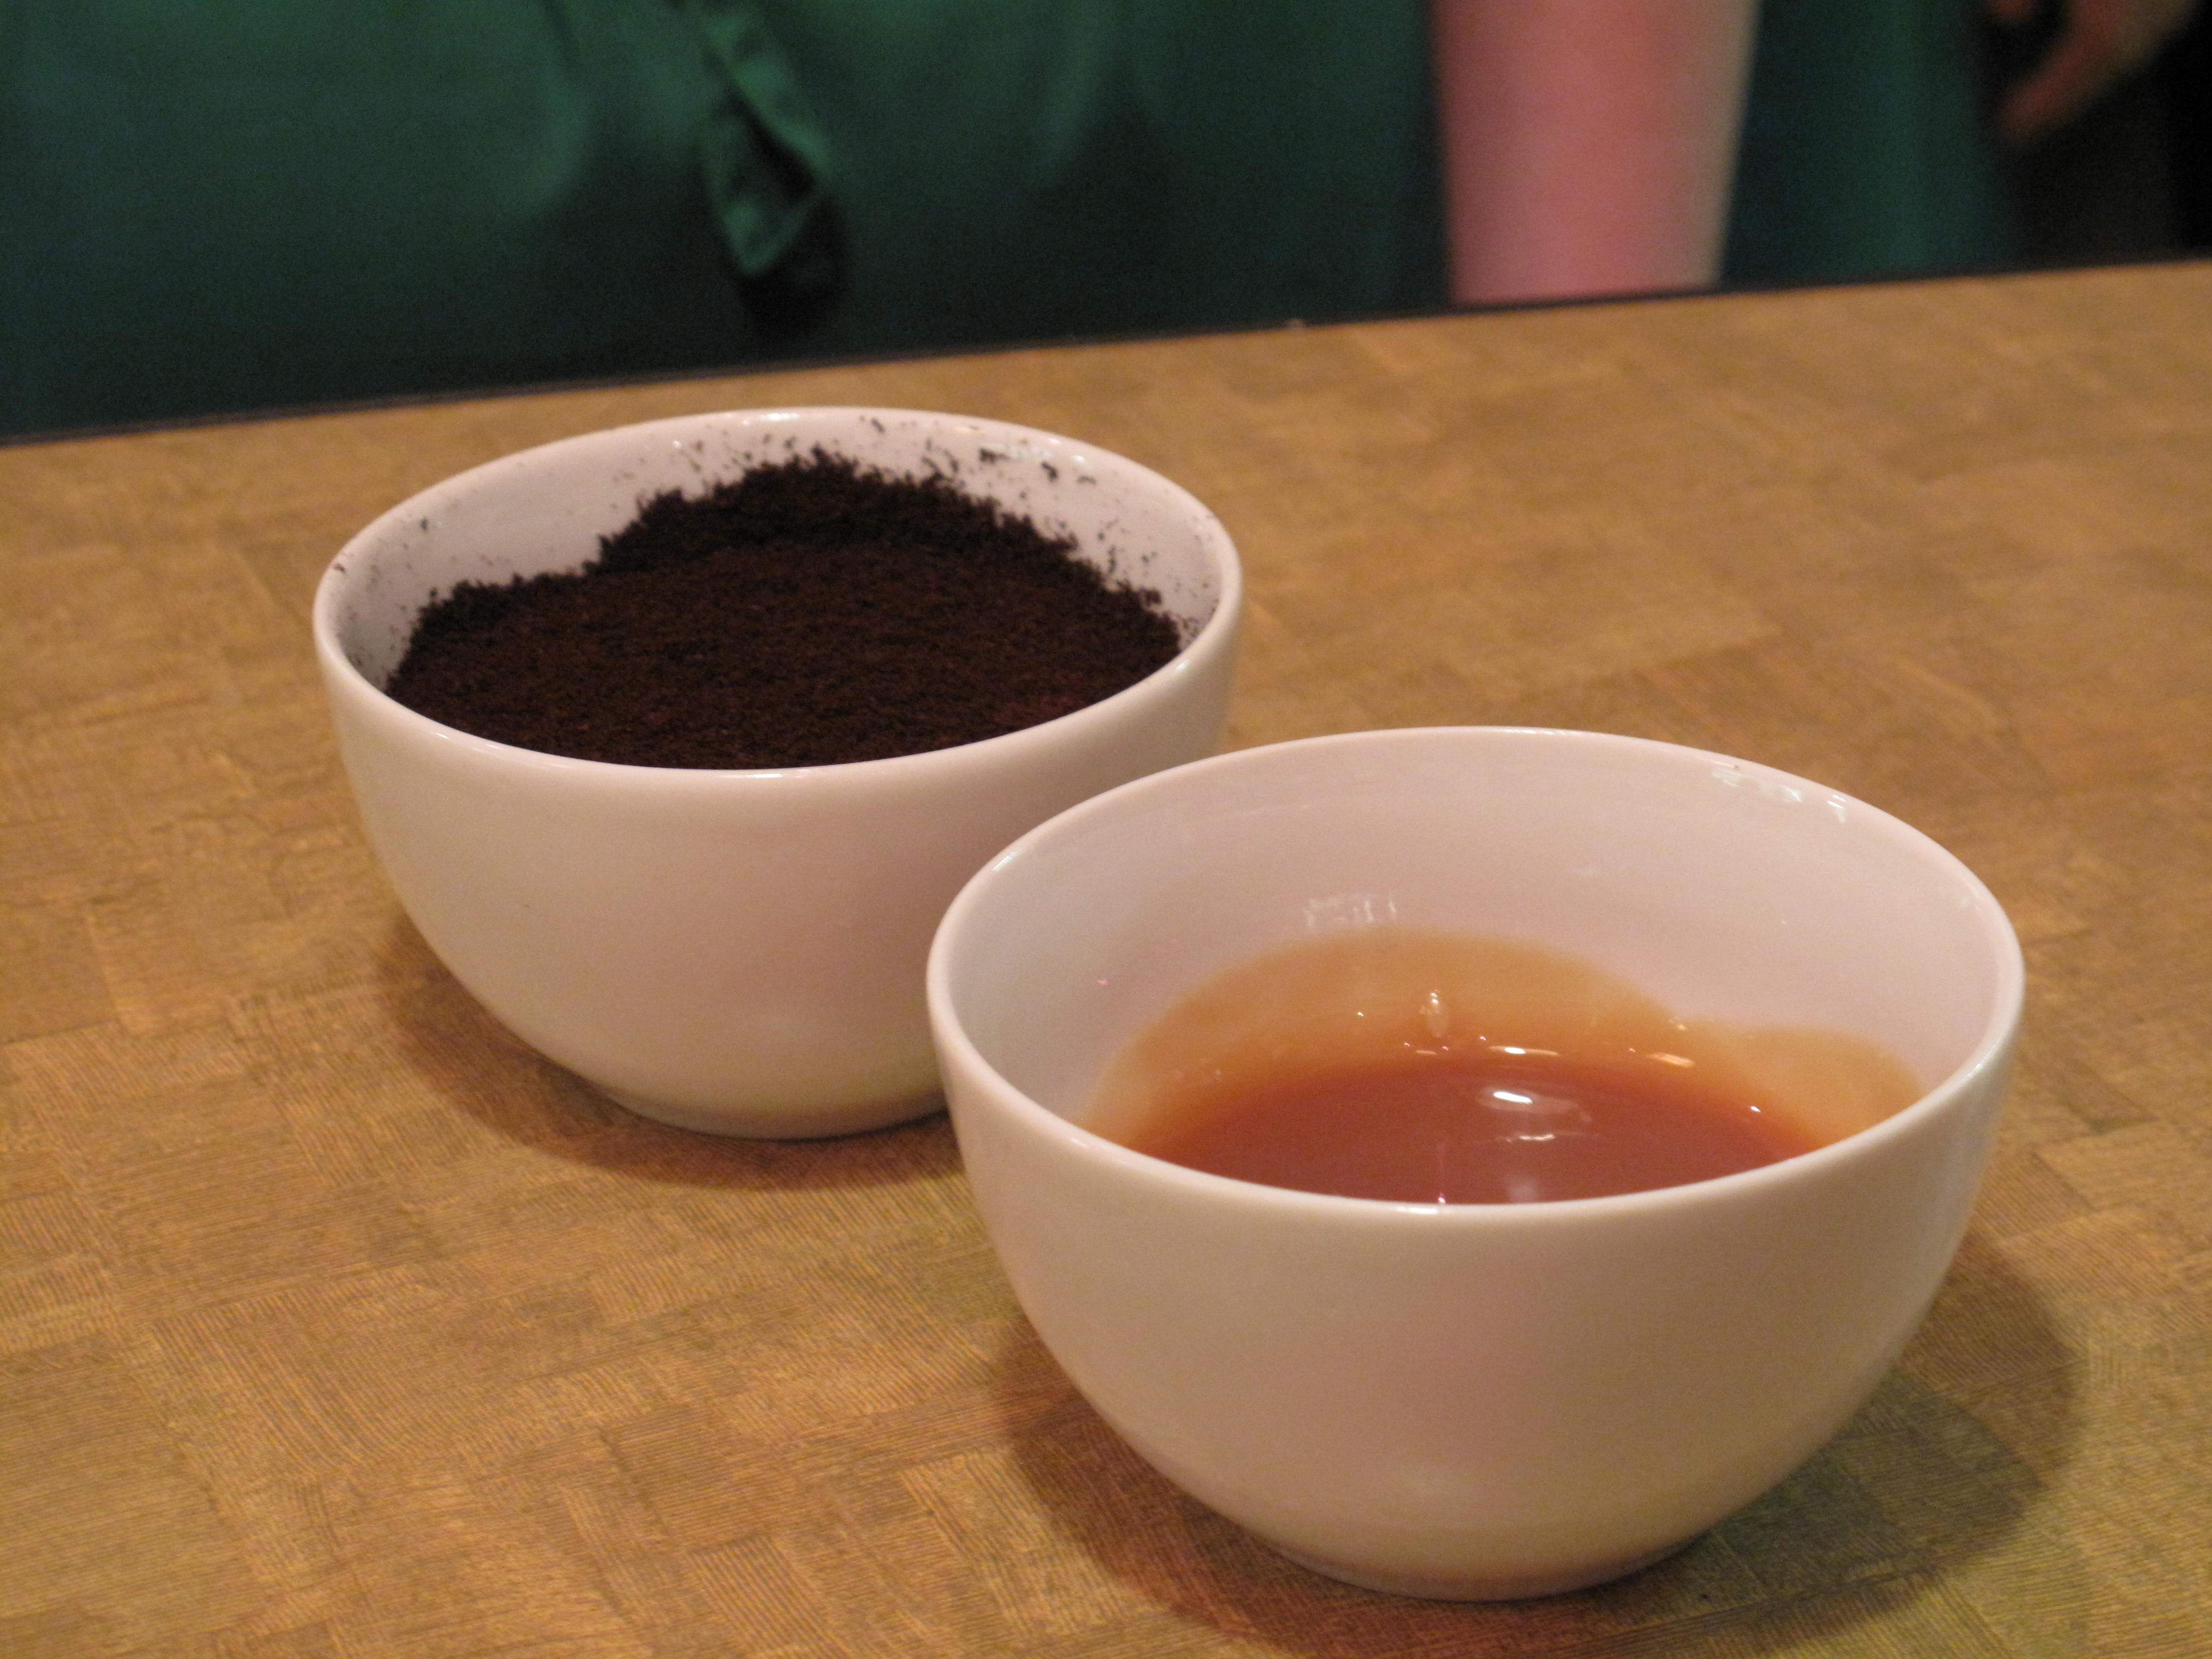 An Asia-Pacific coffee with caramel-like undertones.